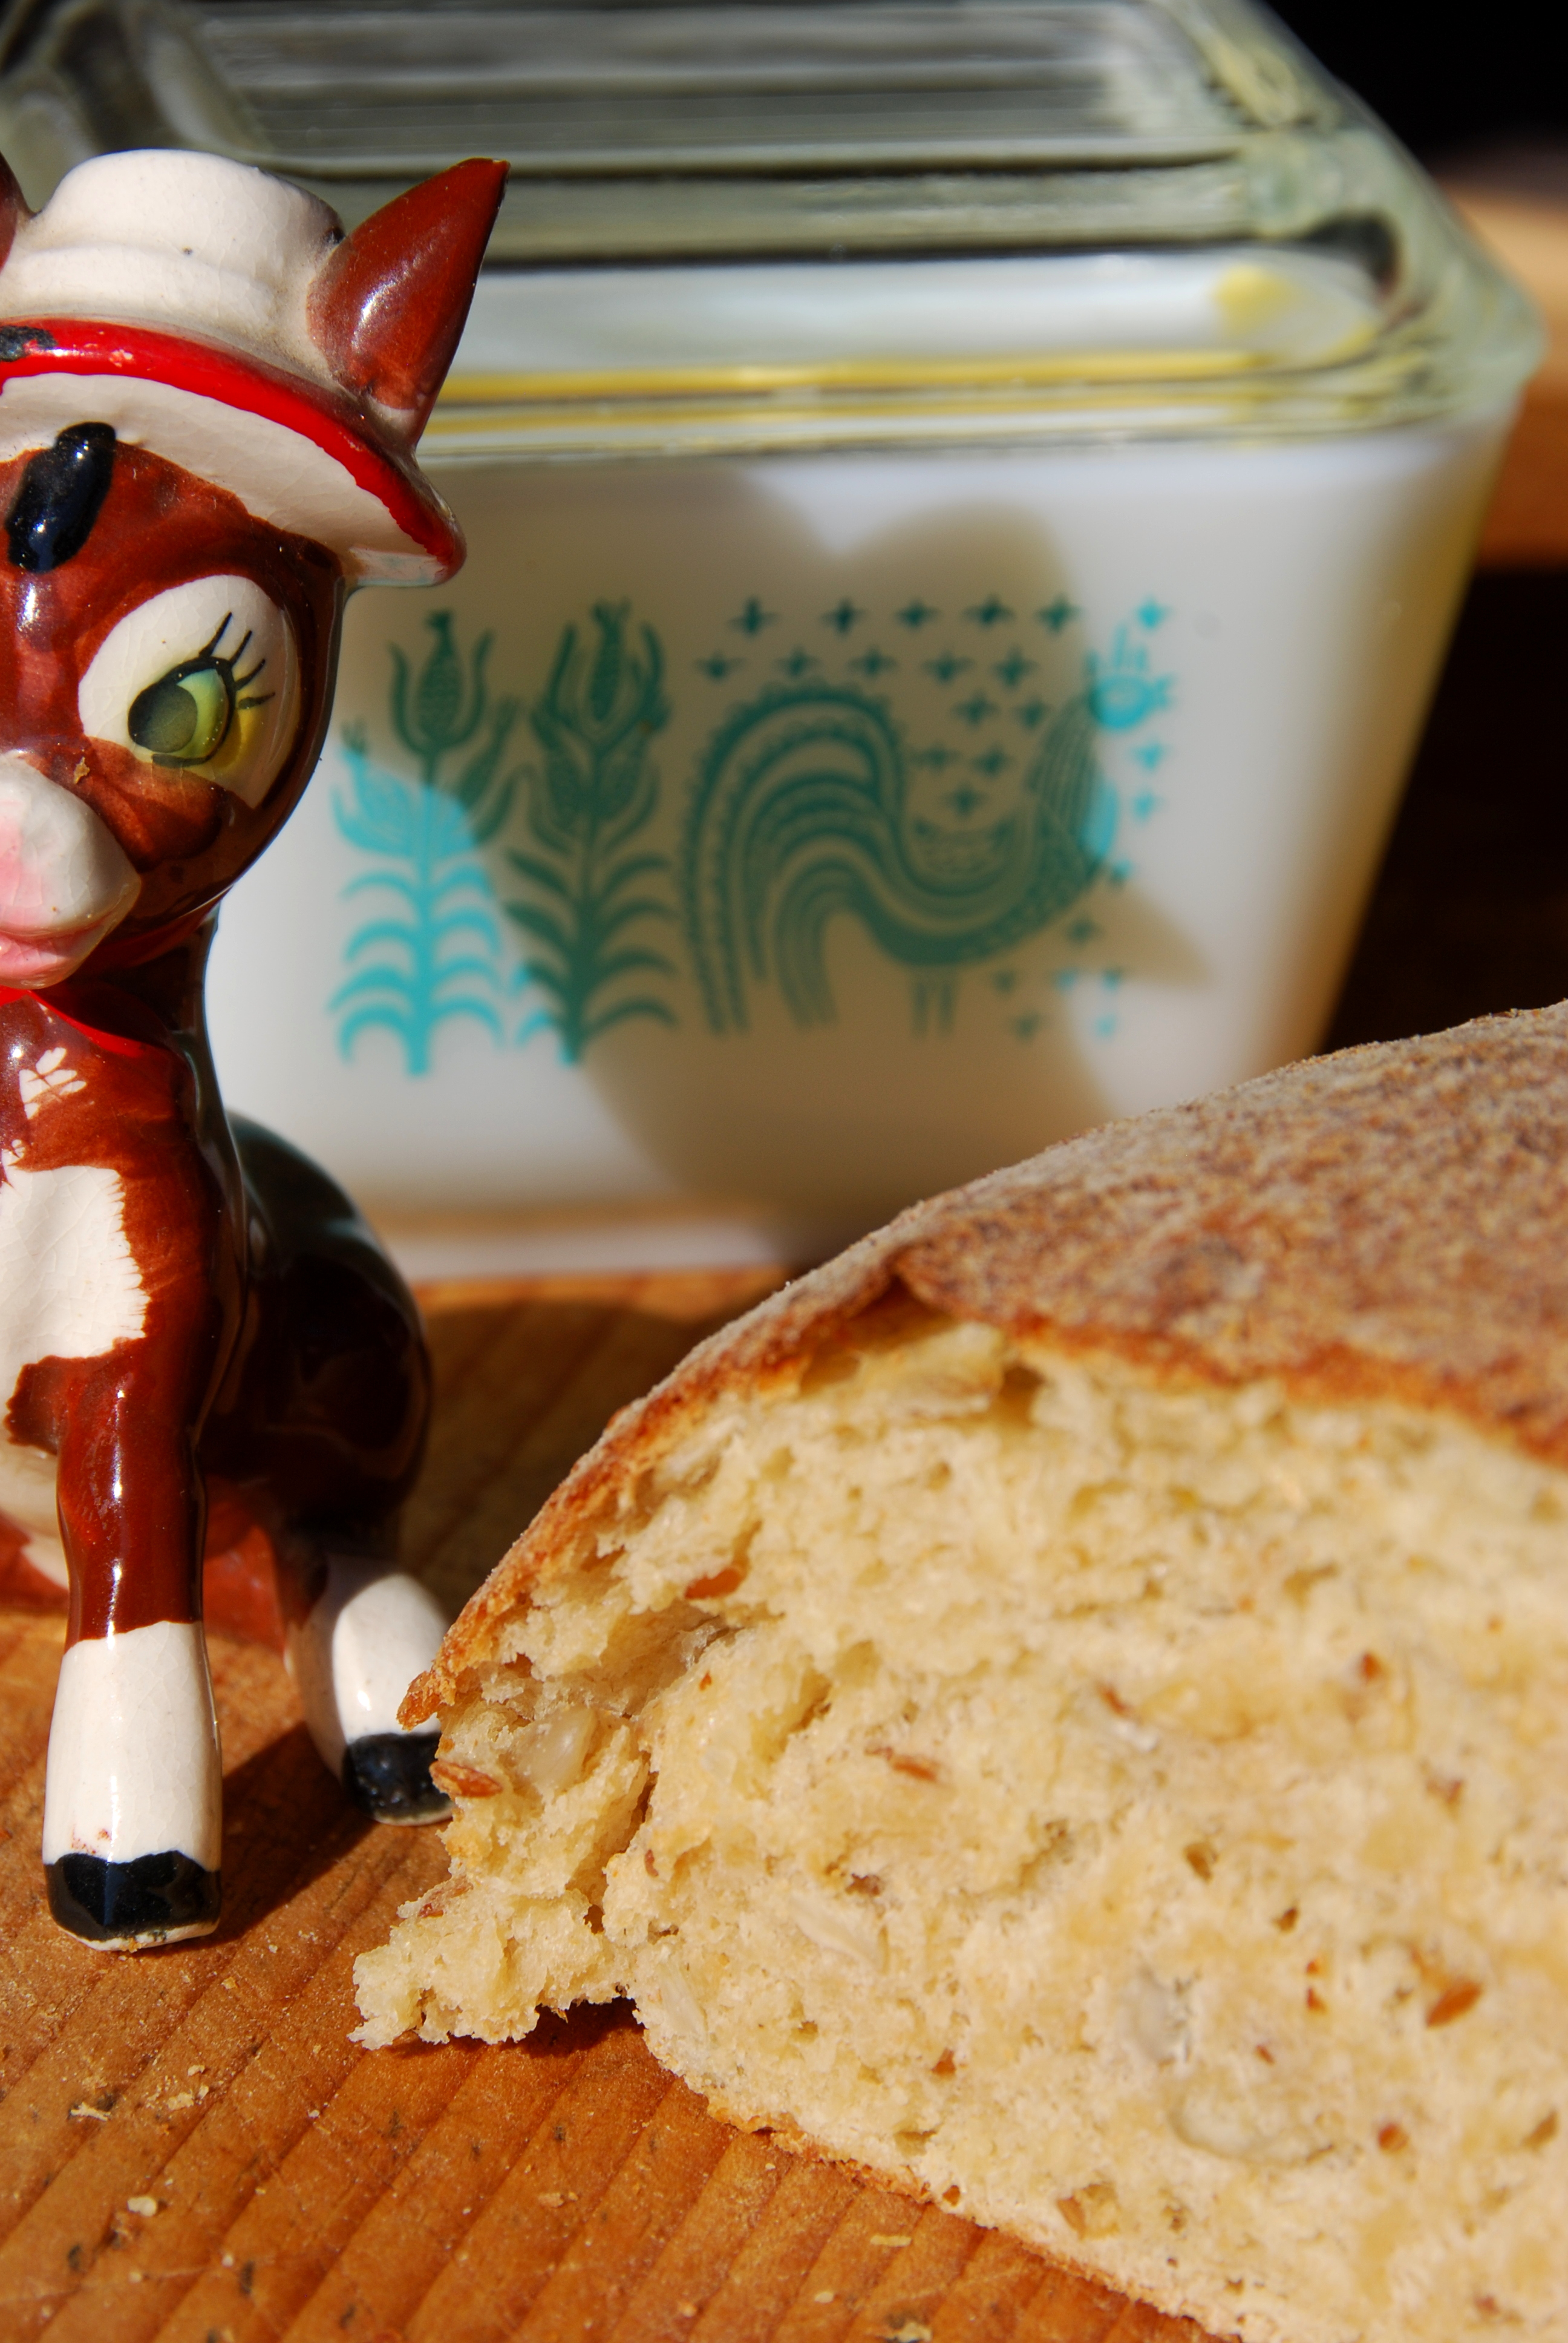 California Pixie makes Buttermilk Seed Bread